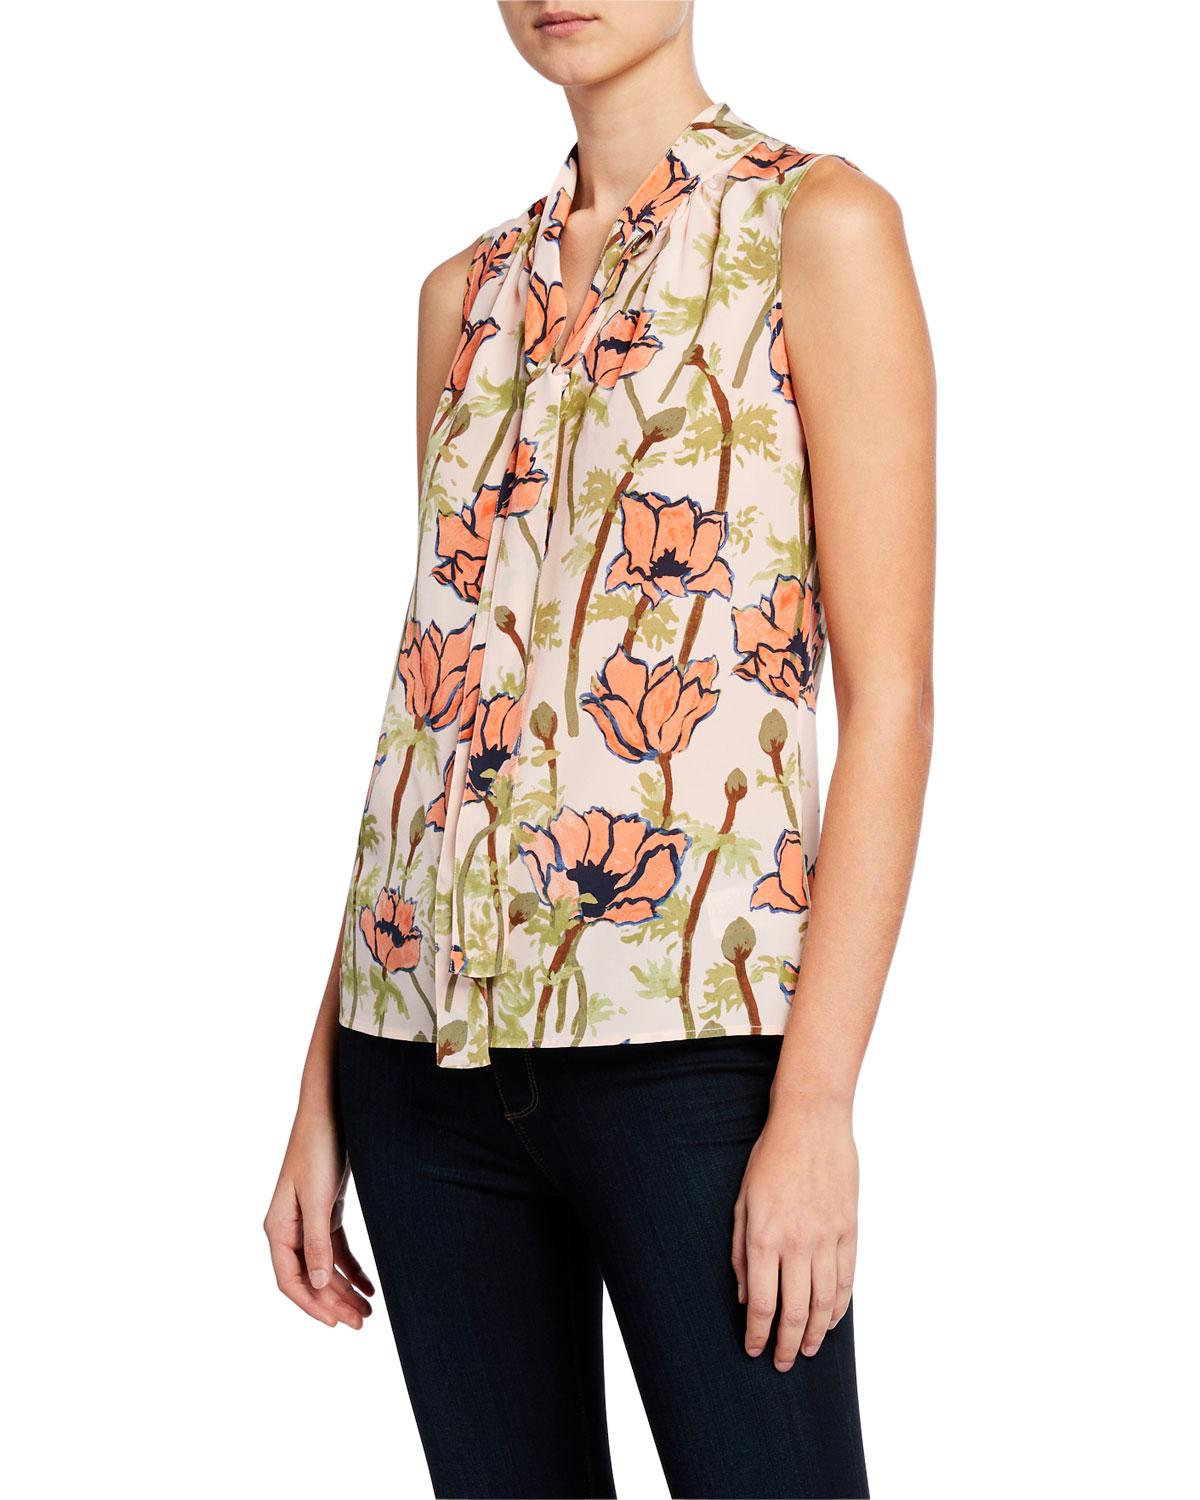 dfe8db6d2ab0 Tory Burch Floral-Printed Sleeveless Tie-Neck Bow Blouse